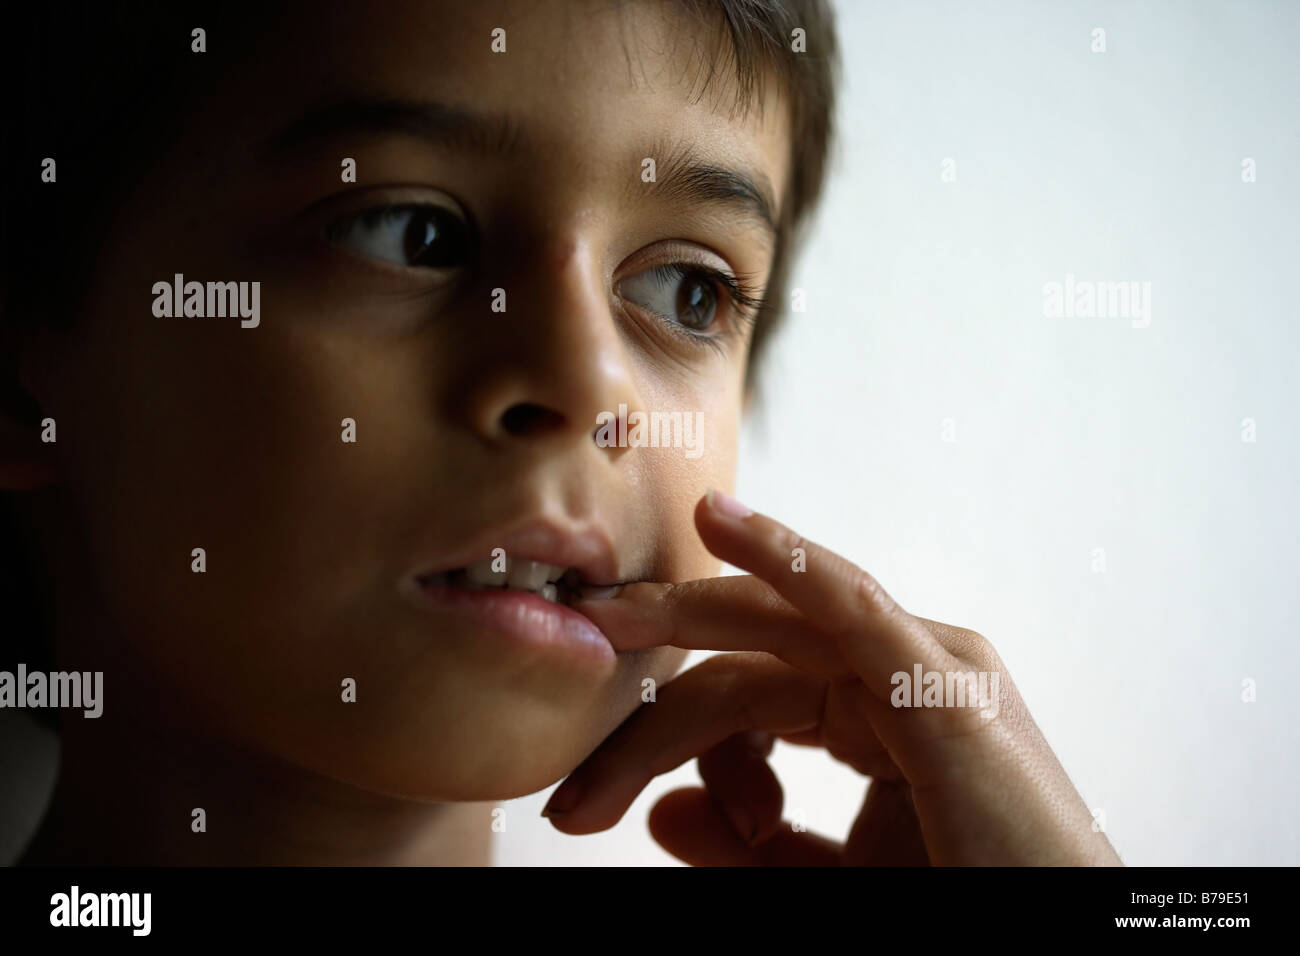 Six year old boy chews nails - Stock Image